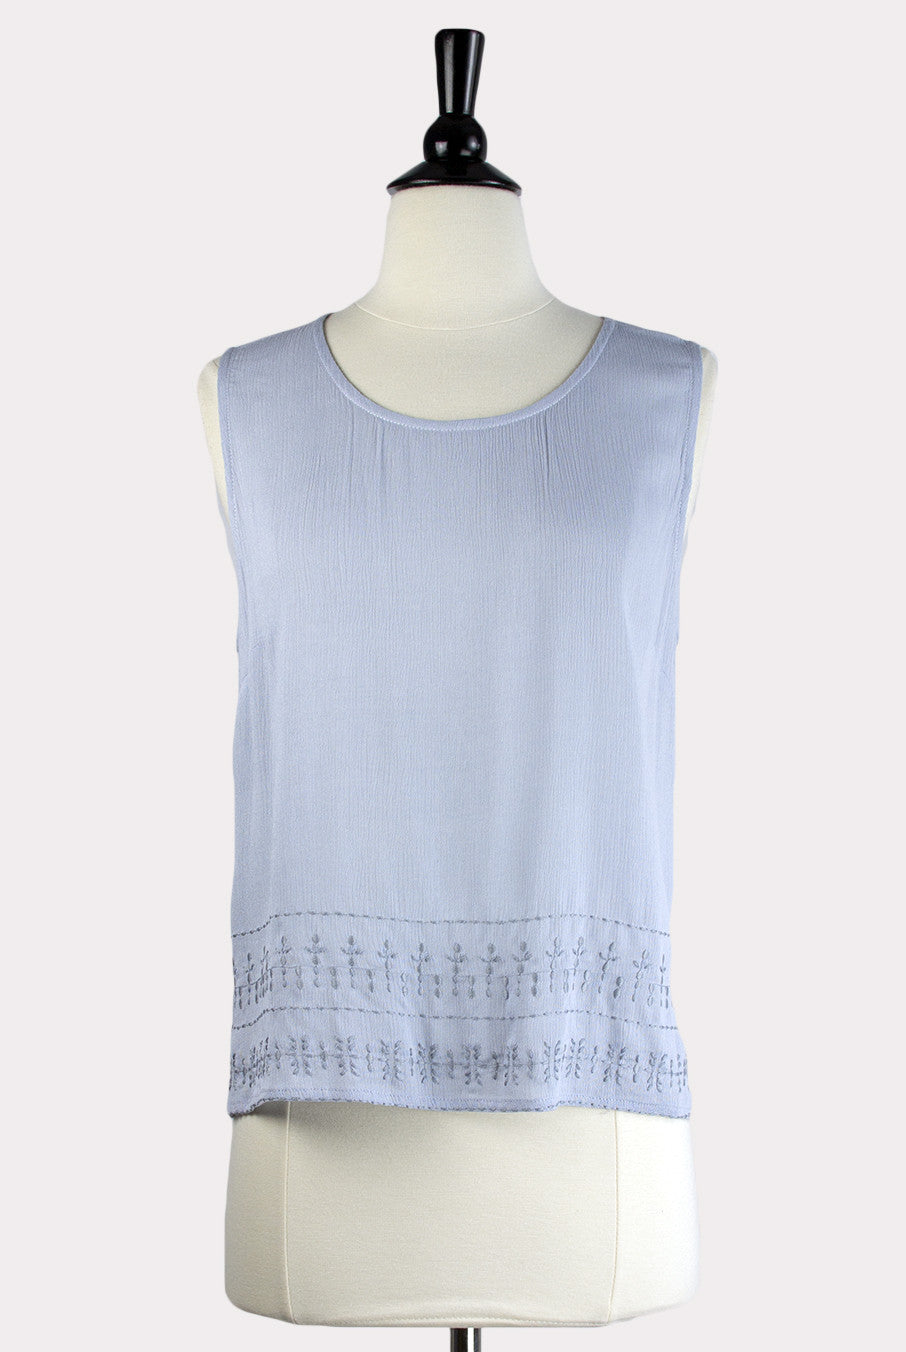 4c704e8979c05c Eden Society | Agnese Light Blue Embroidered Top - Hourglass Boutique - 1  ...